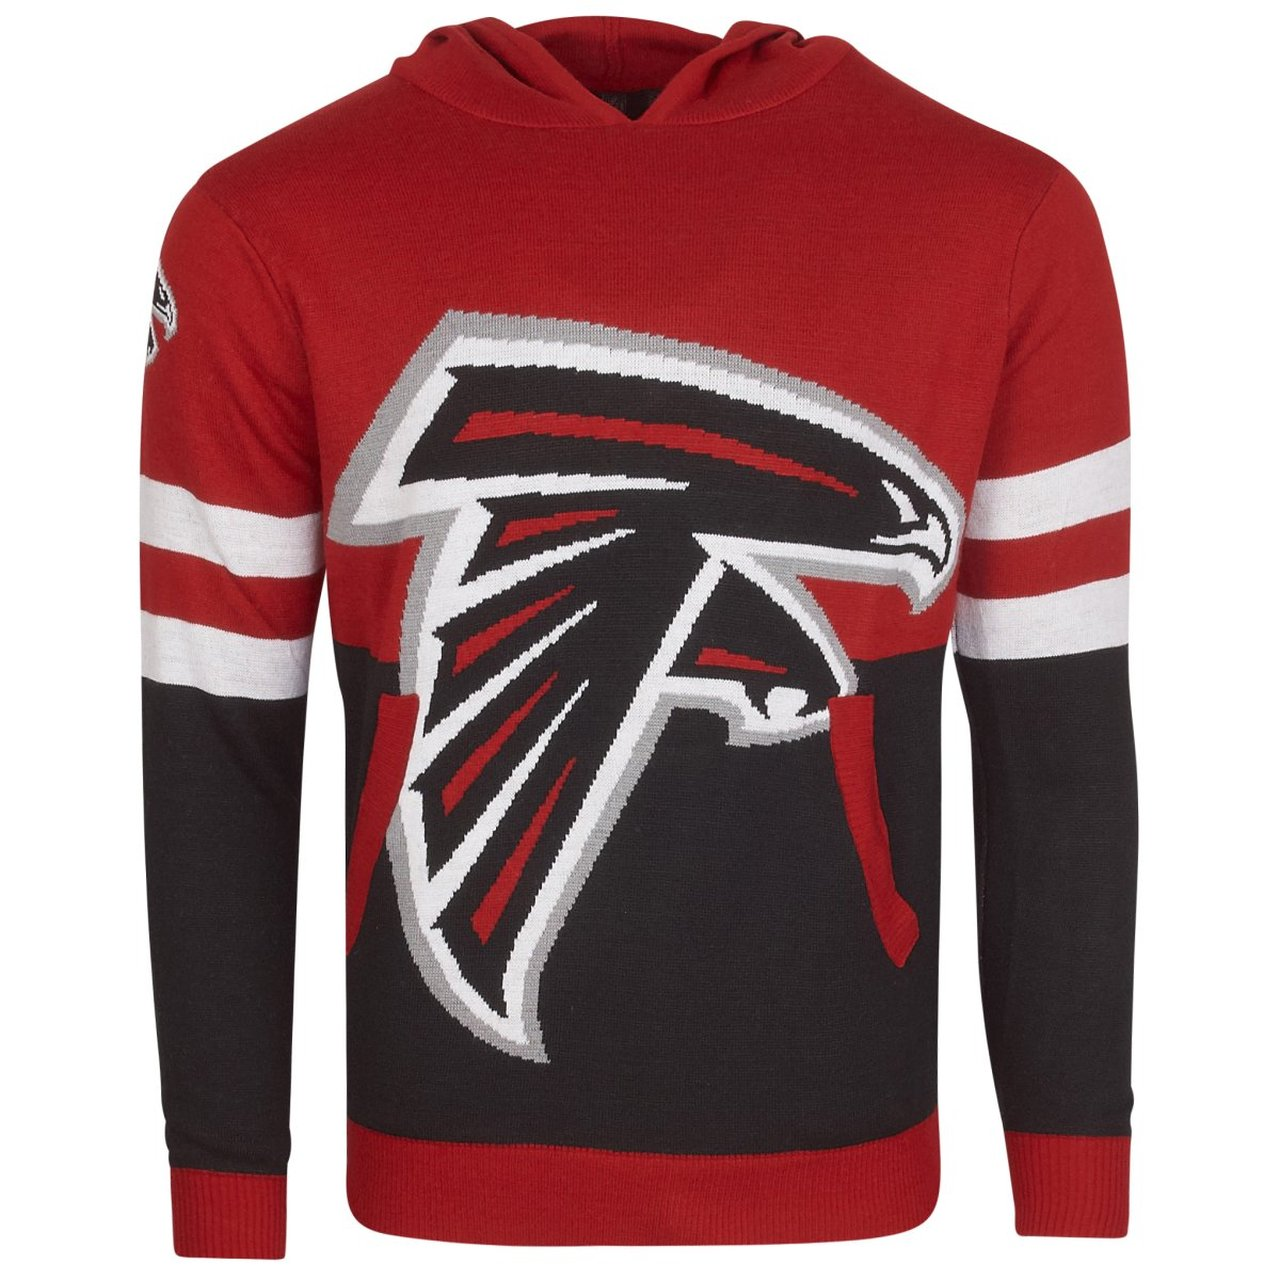 Nfl Ugly Sweater